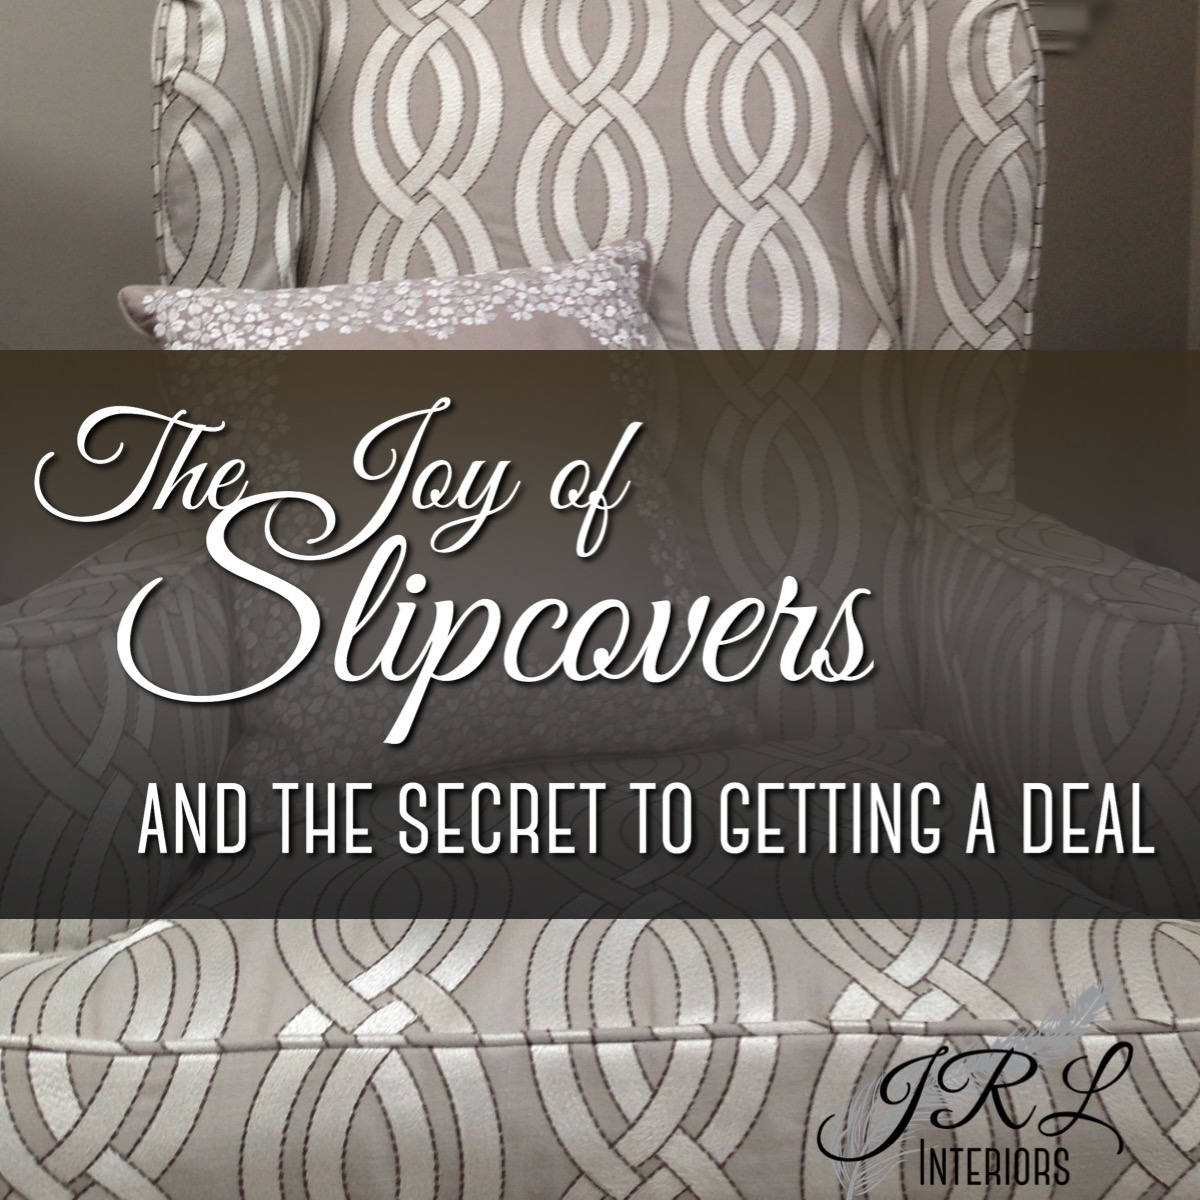 Slipcovers - and the secret to getting a deal-1.jpg